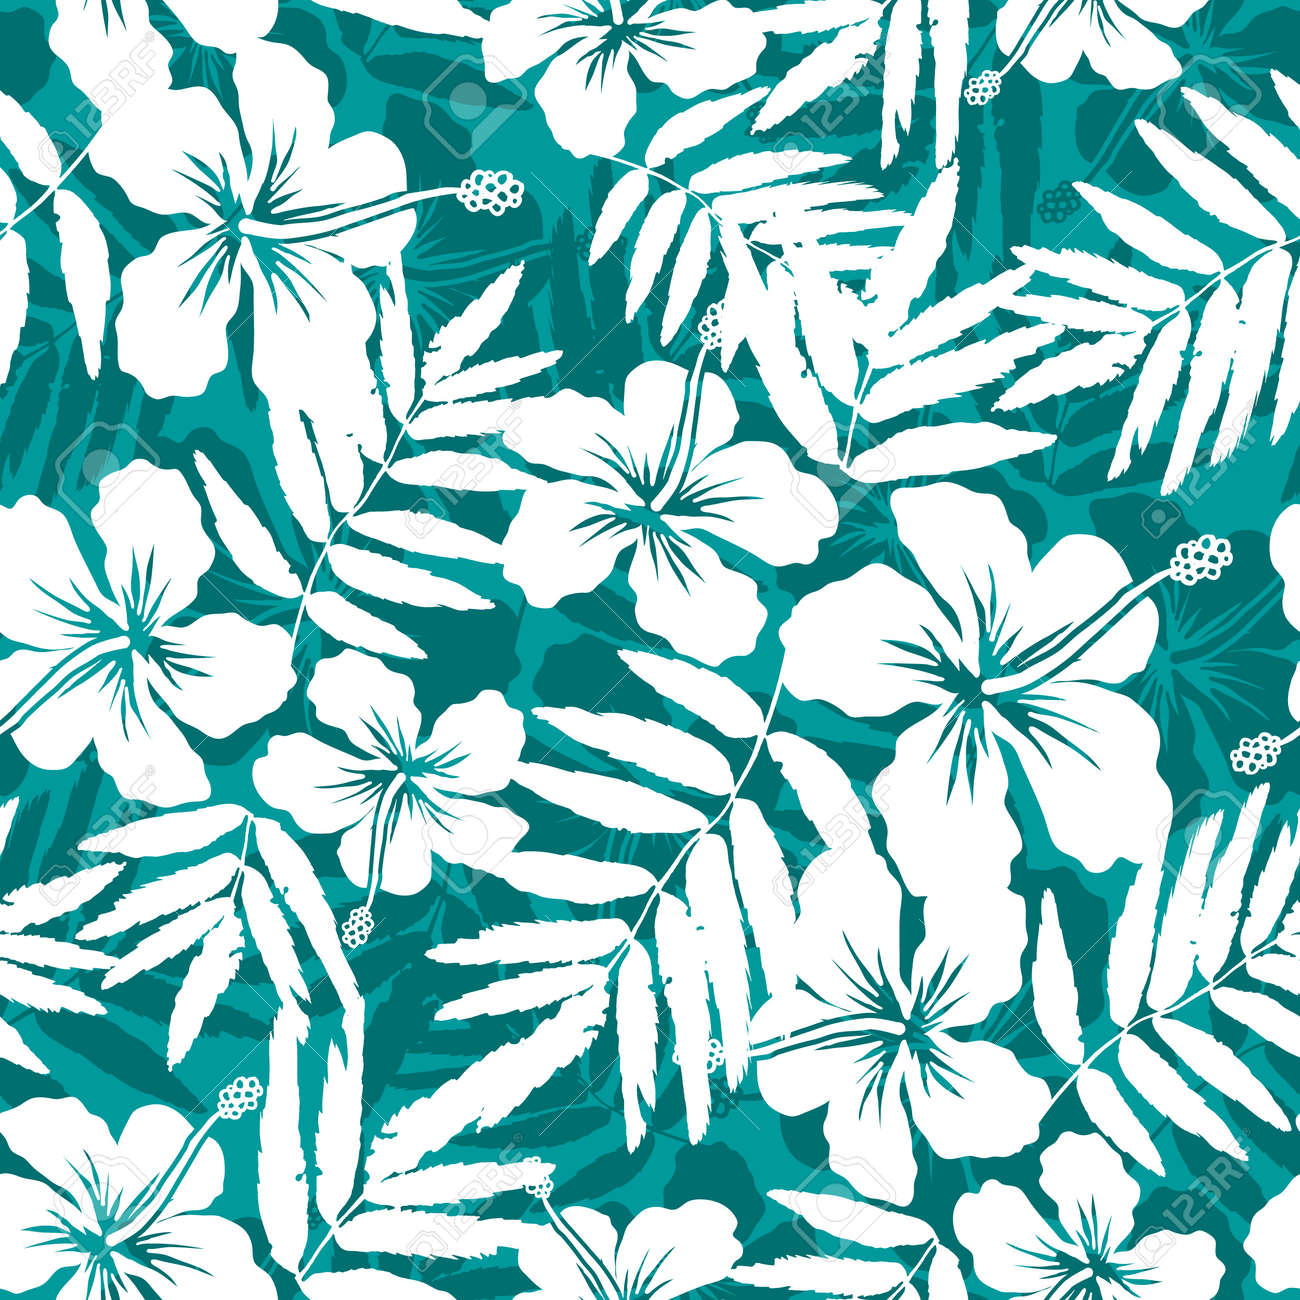 Blue and white tropical flowers silhouettes seamless pattern blue and white tropical flowers silhouettes seamless pattern stock vector 41080837 dhlflorist Image collections